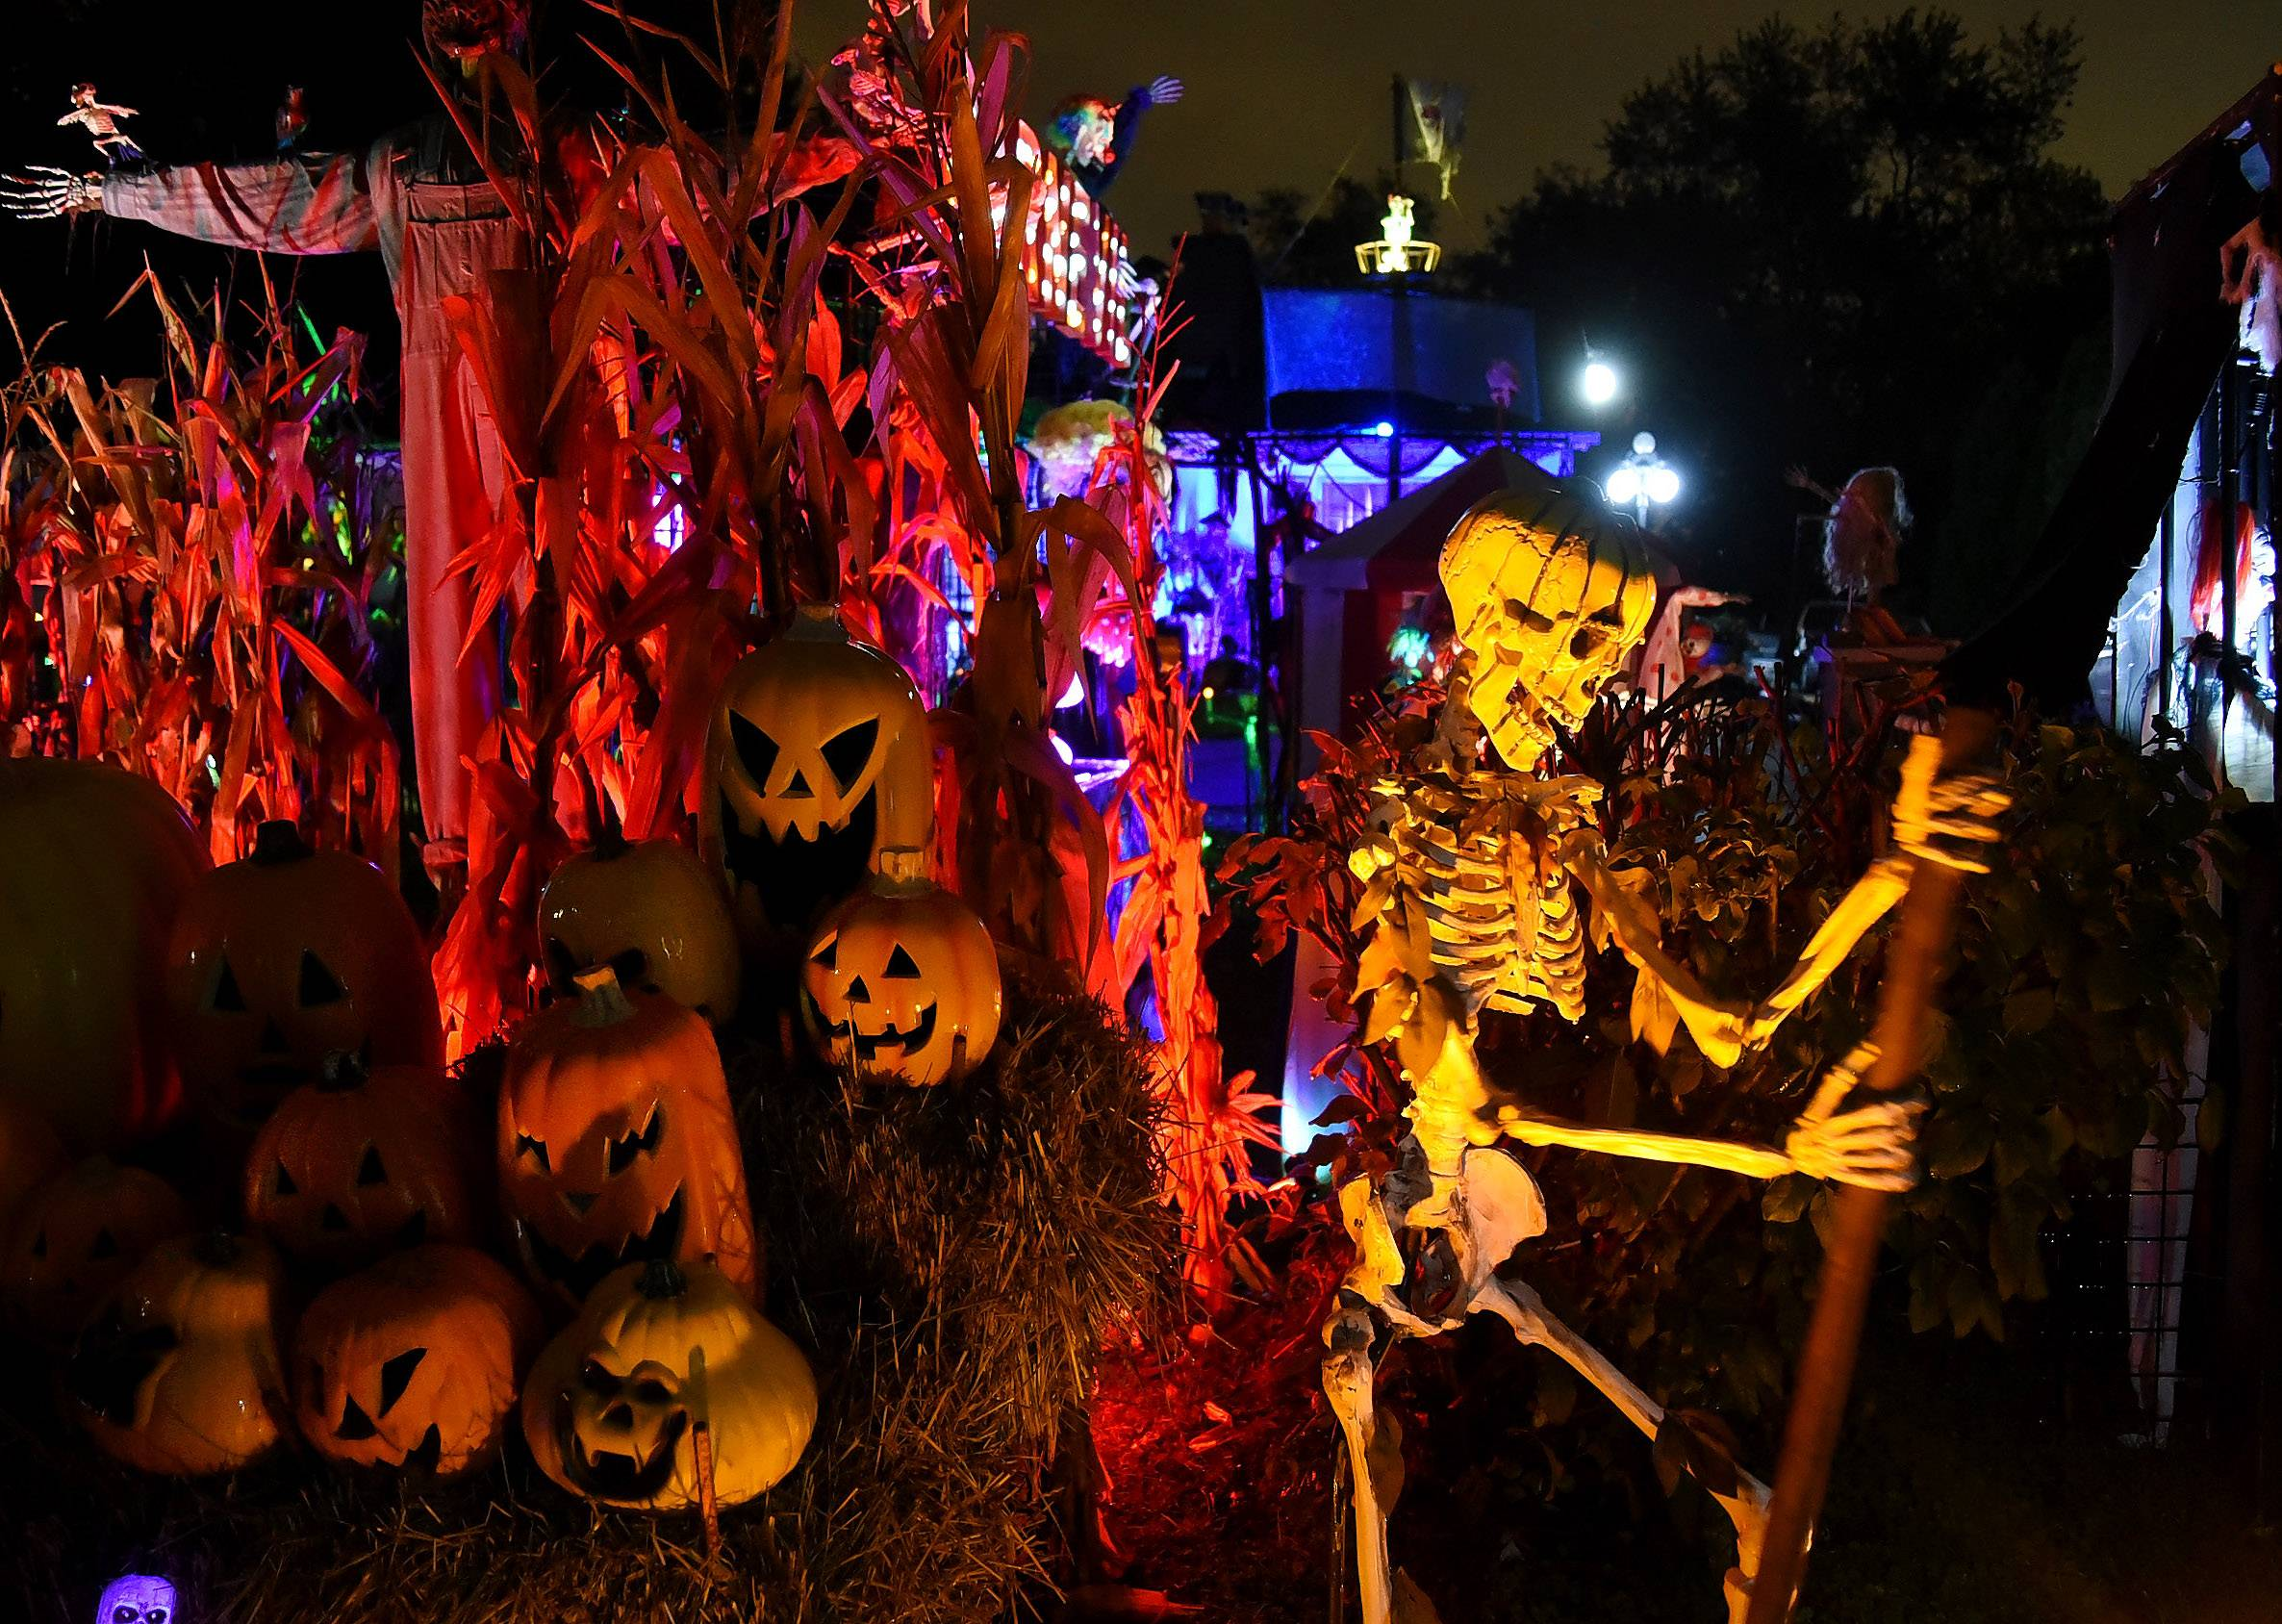 For 17 years, Michael Podlin and TammySue Margalit have turned their Arlington Heights home into a spectacular Halloween display, with movie creatures, music and lights.